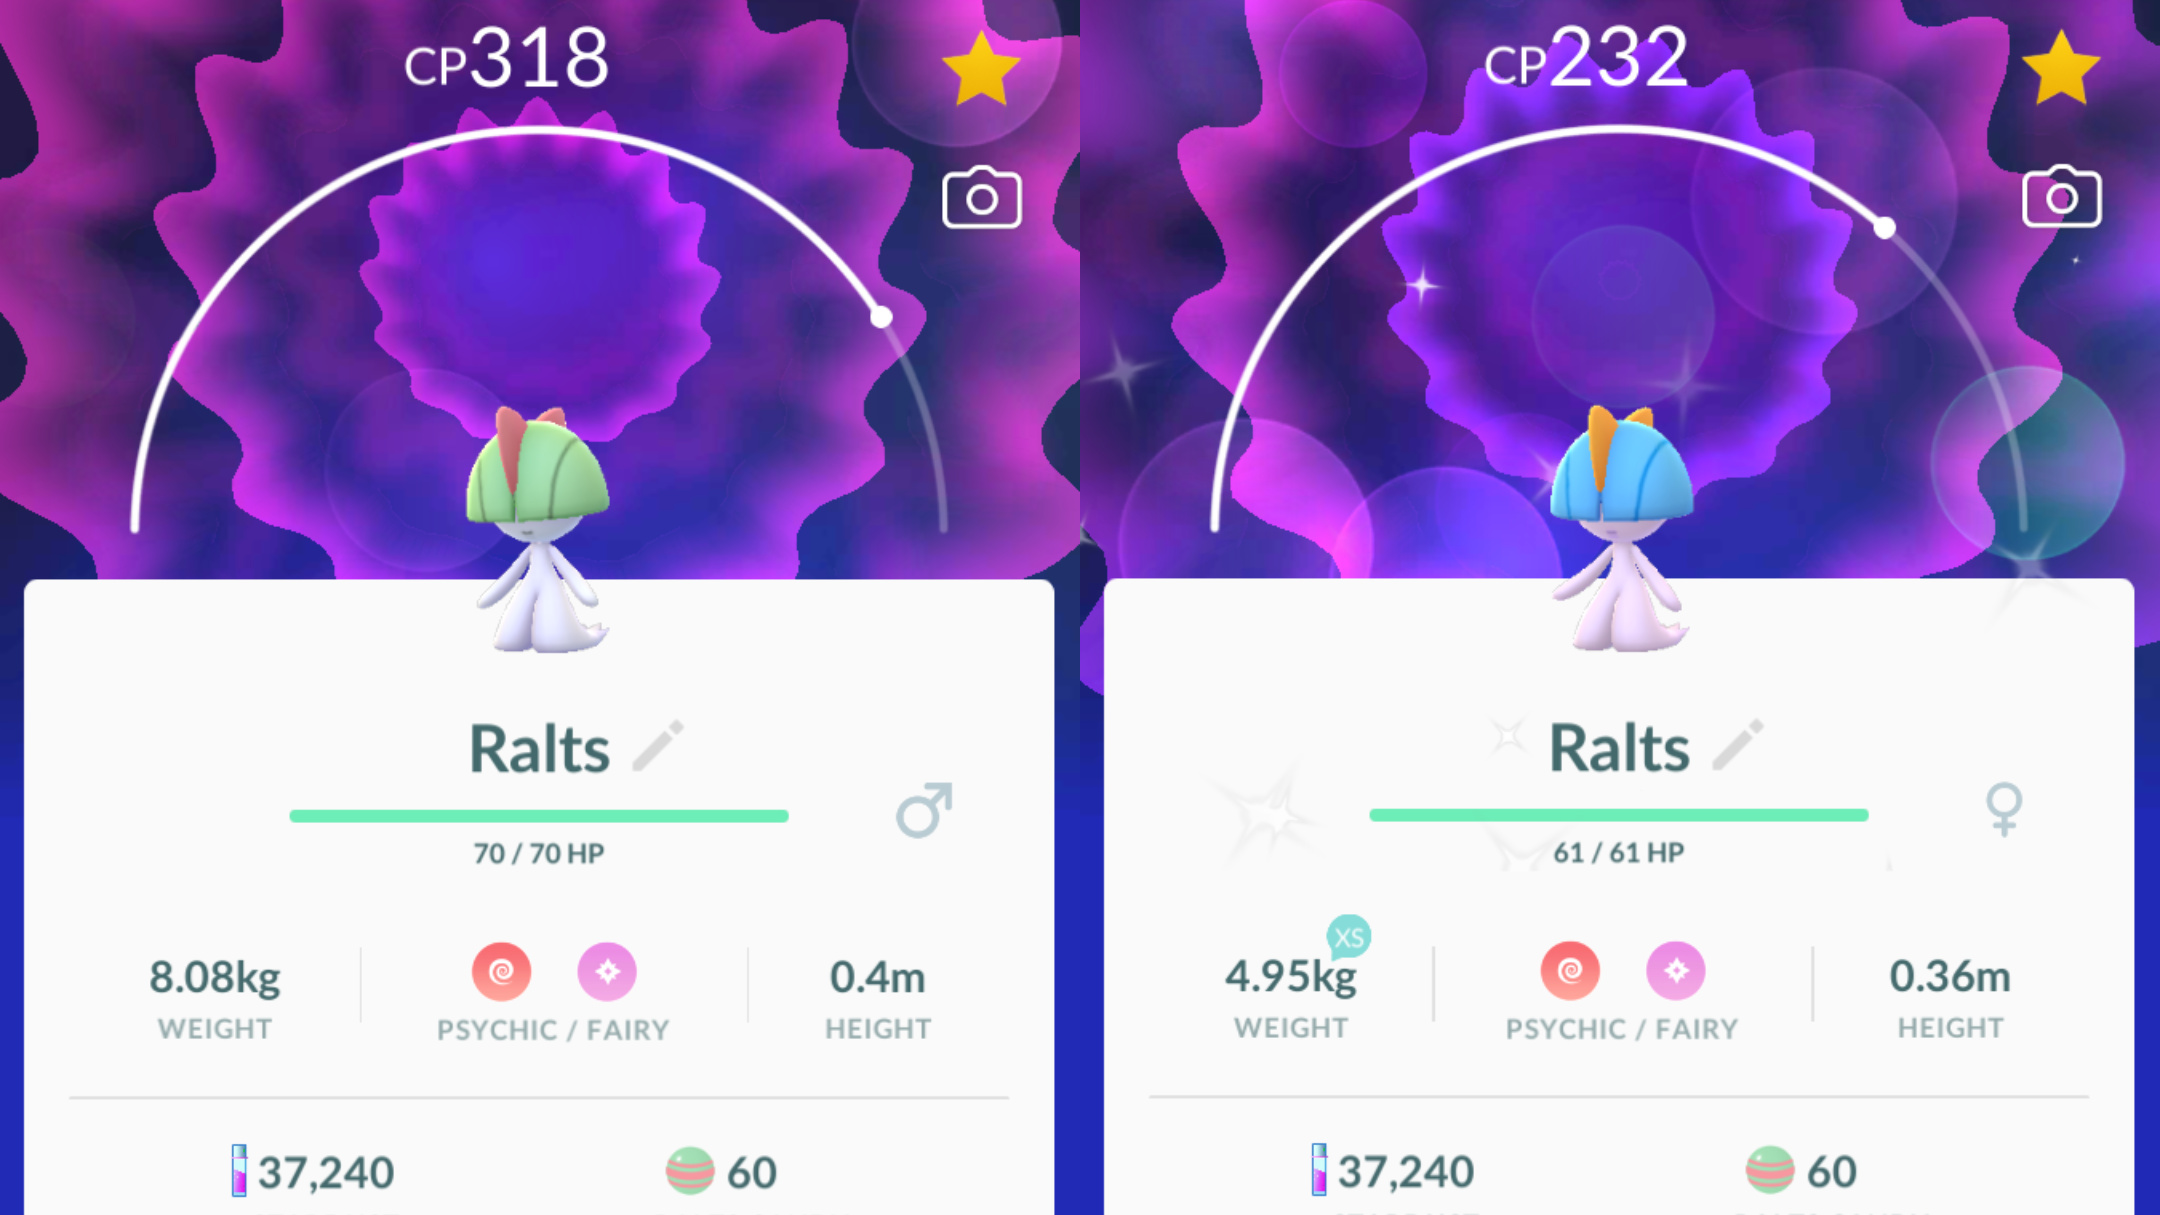 Pokémon GO Community Days - Event Times, This Month's Featured